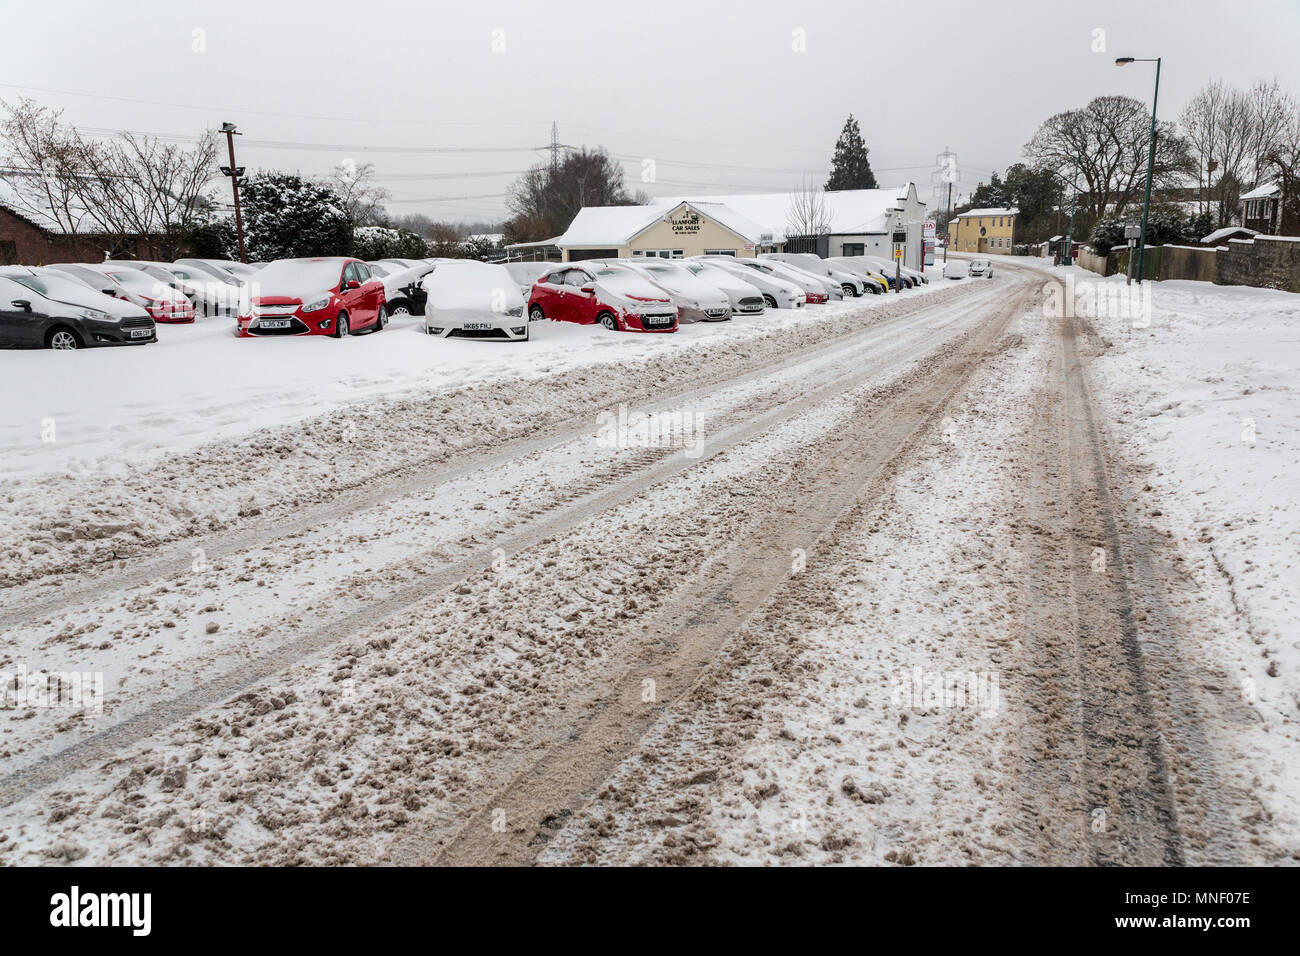 Slush in road that has been salted in winter, Llanfoist, UK - Stock Image